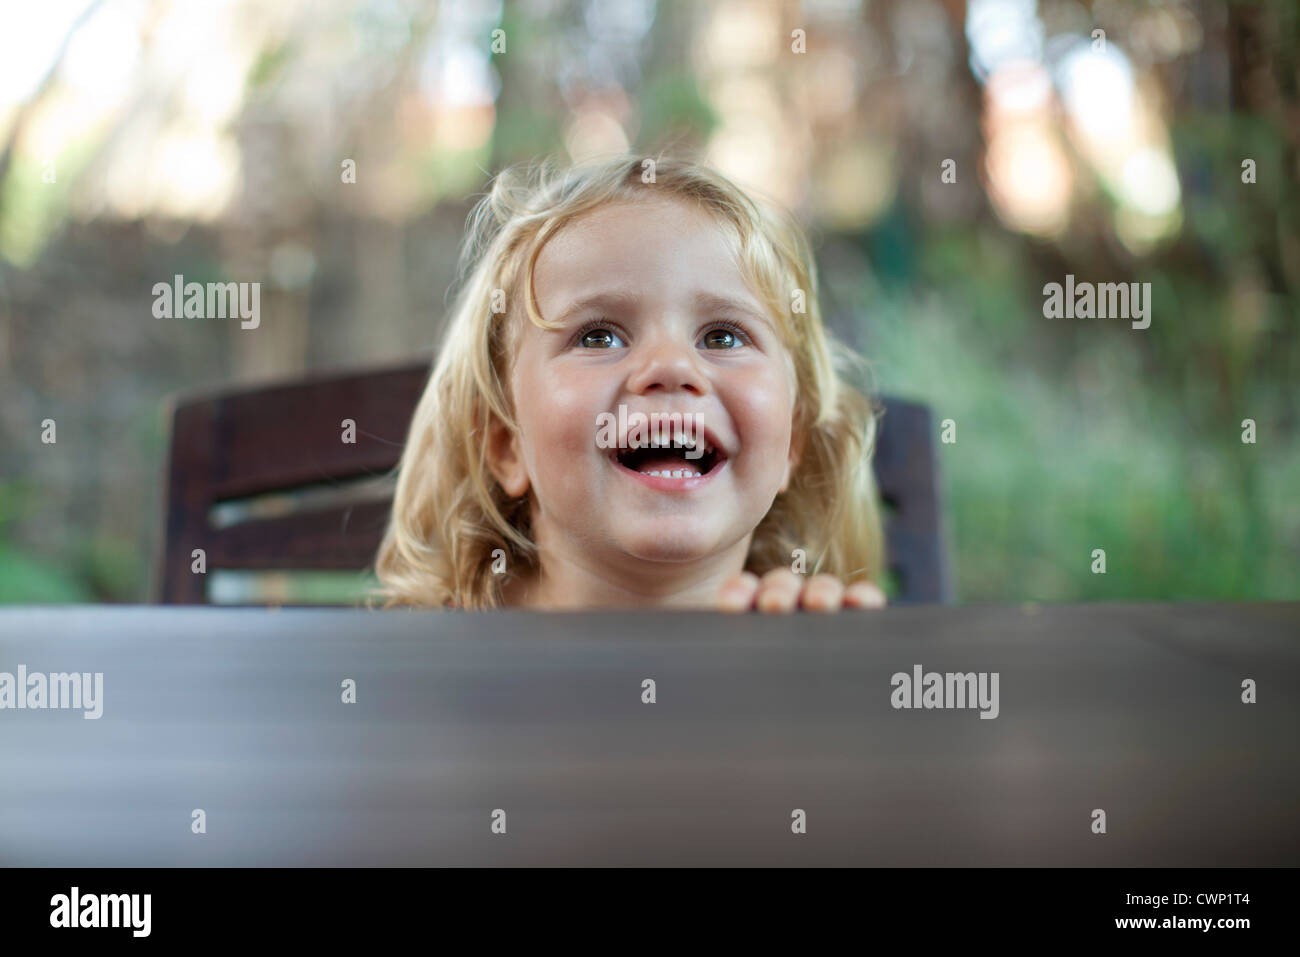 Little girl laughing Photo Stock